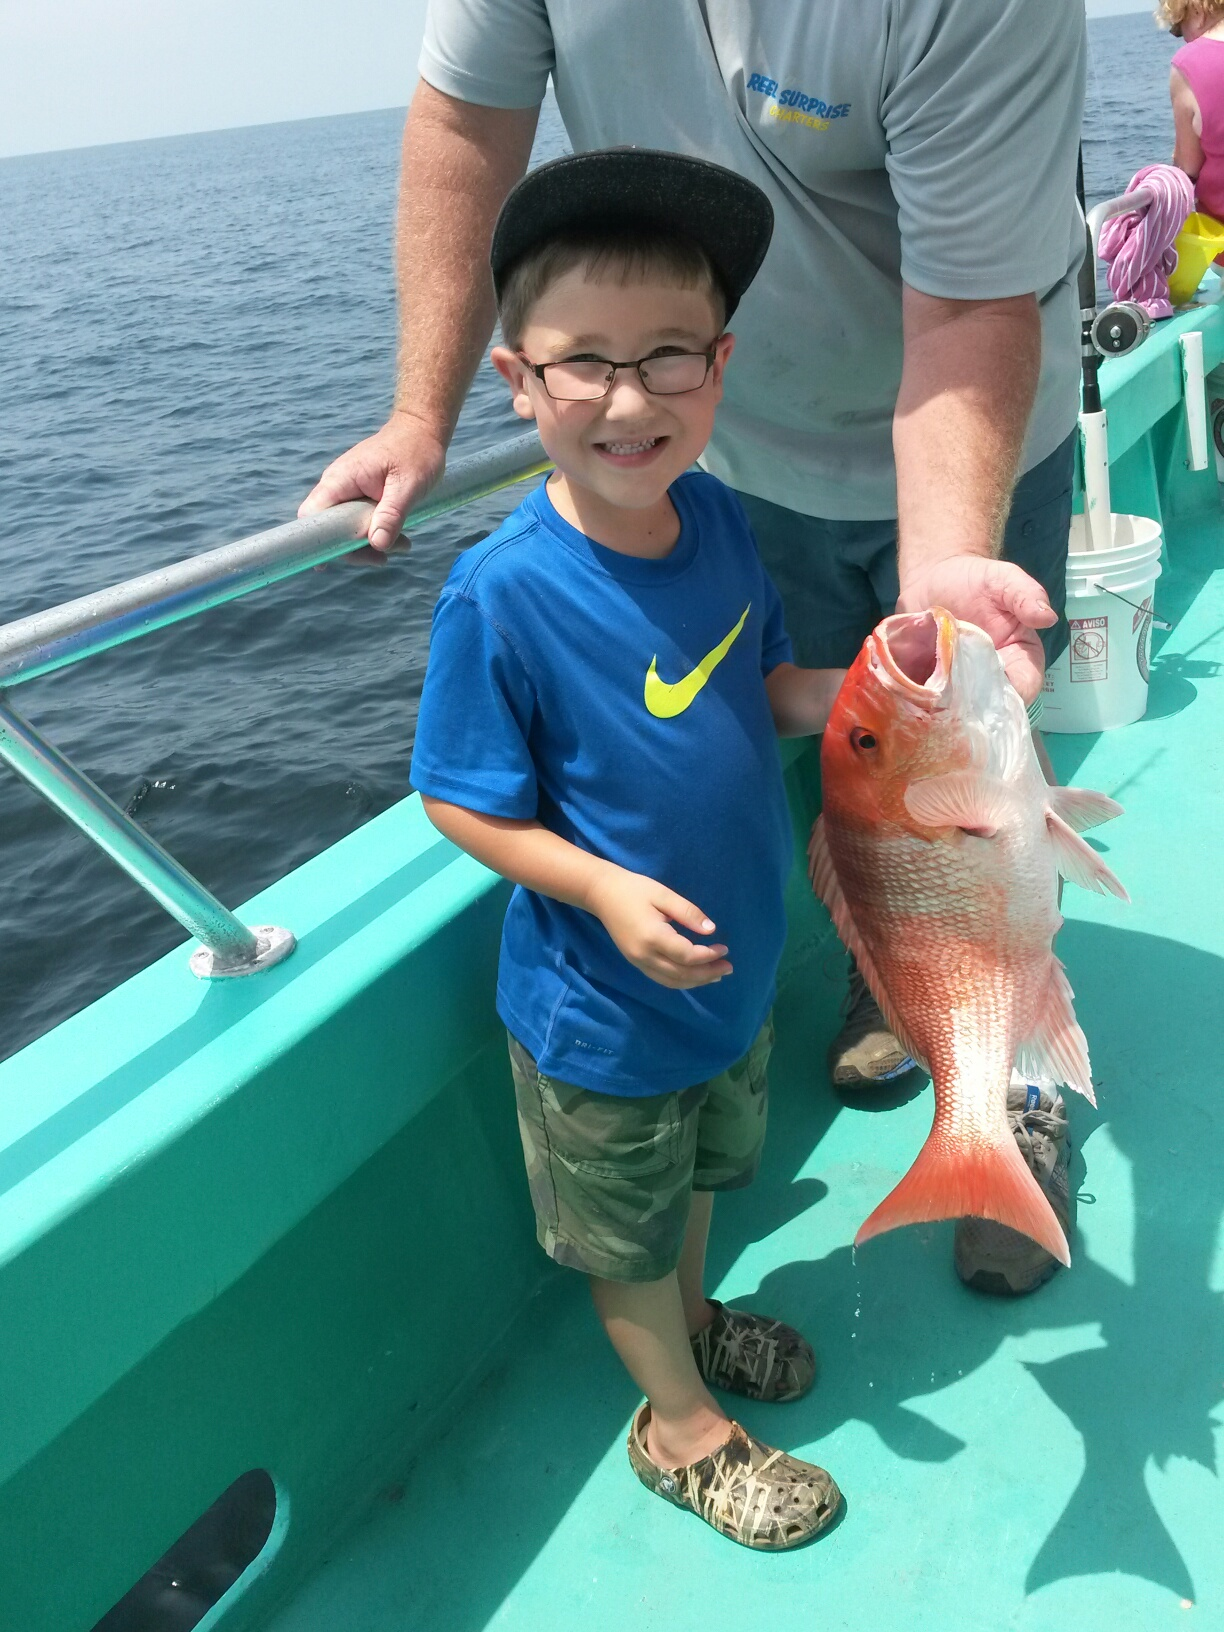 https://alabama-travel.s3.amazonaws.com/partners-uploads/photo/image/54efbd34f1db87a69100002c/deep_sea_fishing_alabama_big_smile_boy_with_his_red_snapper.jpg